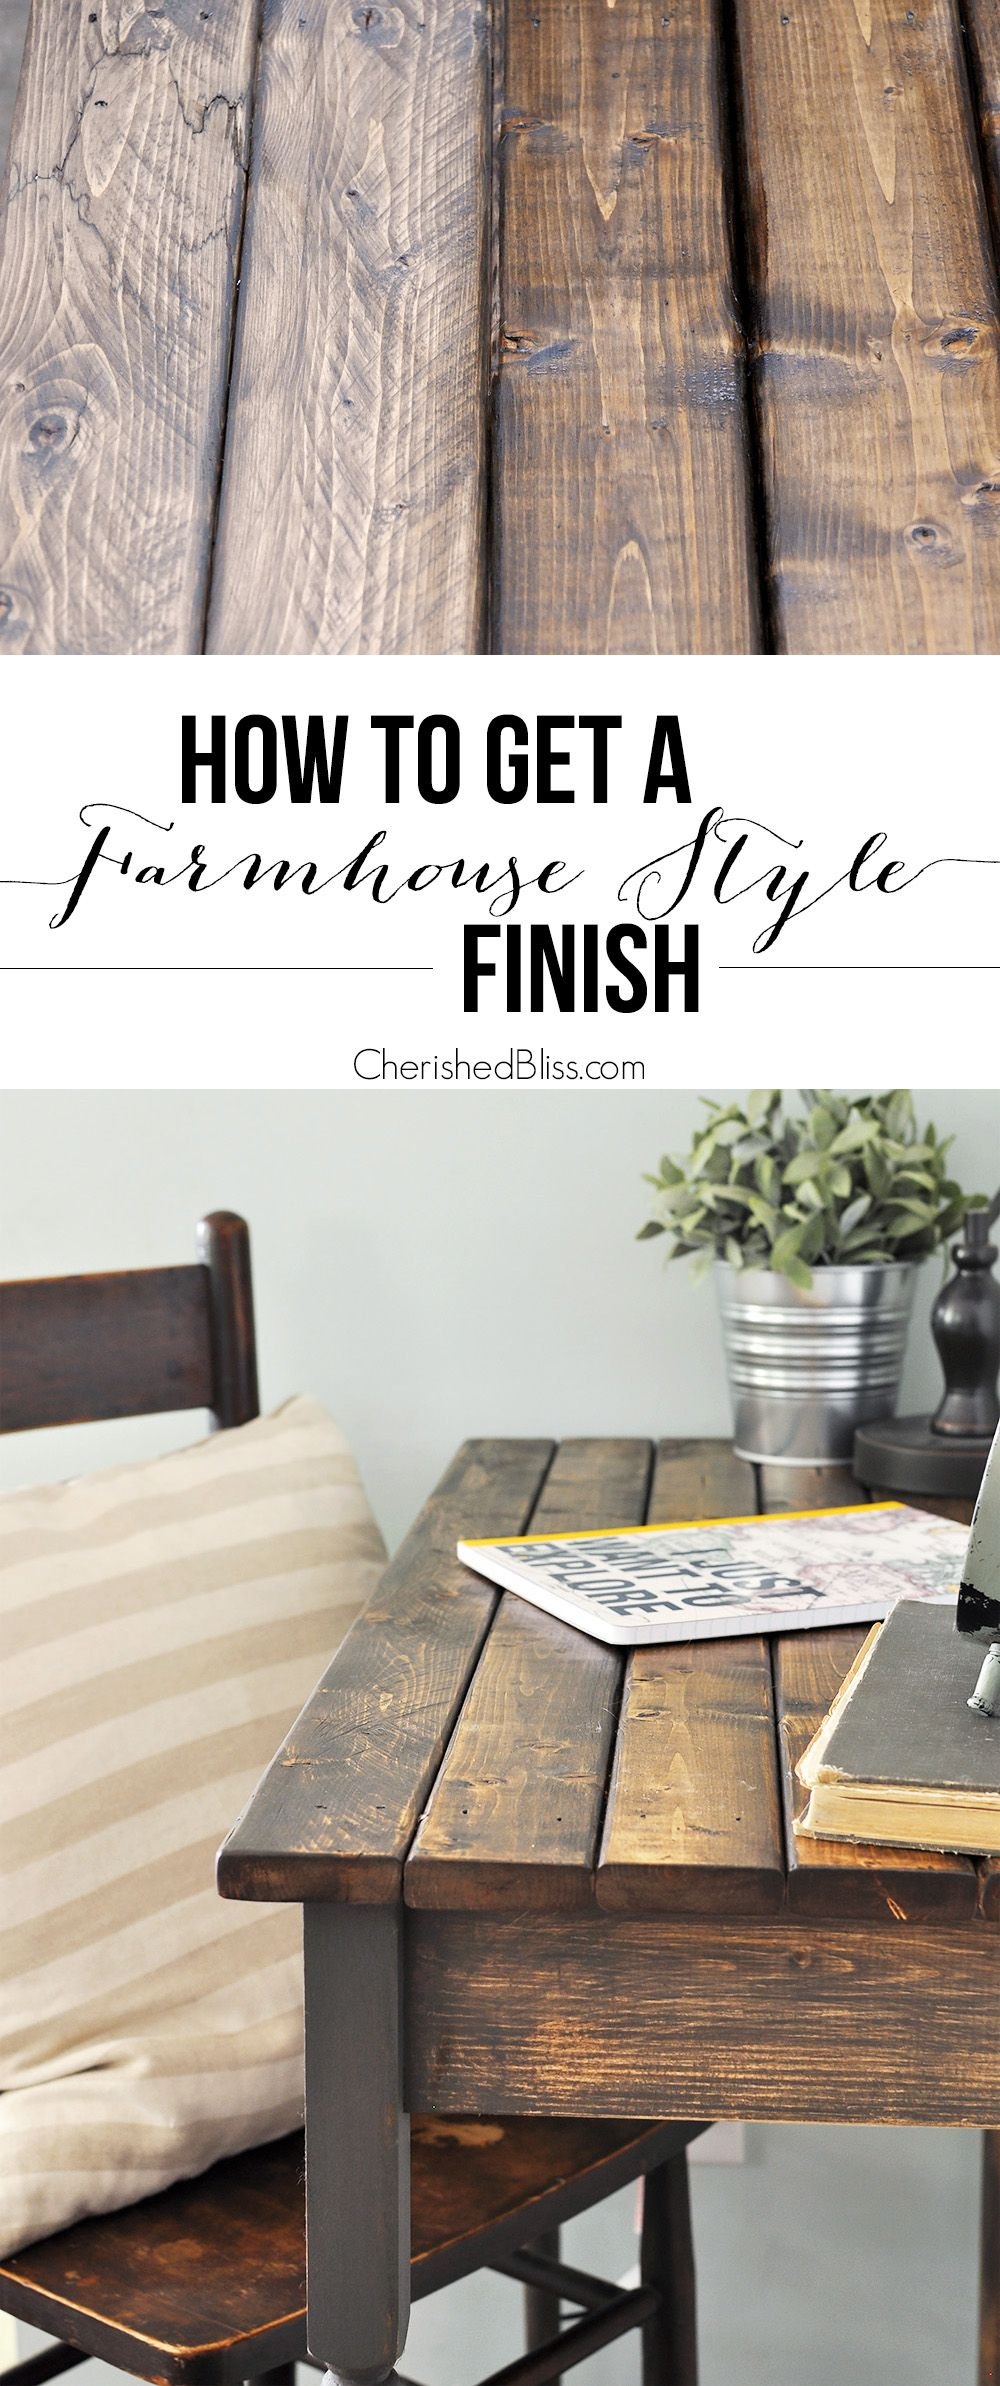 How To Get A Farmhouse Style Finish Refinishing Furniture Diy Easy Home Decor Creative Home Decor